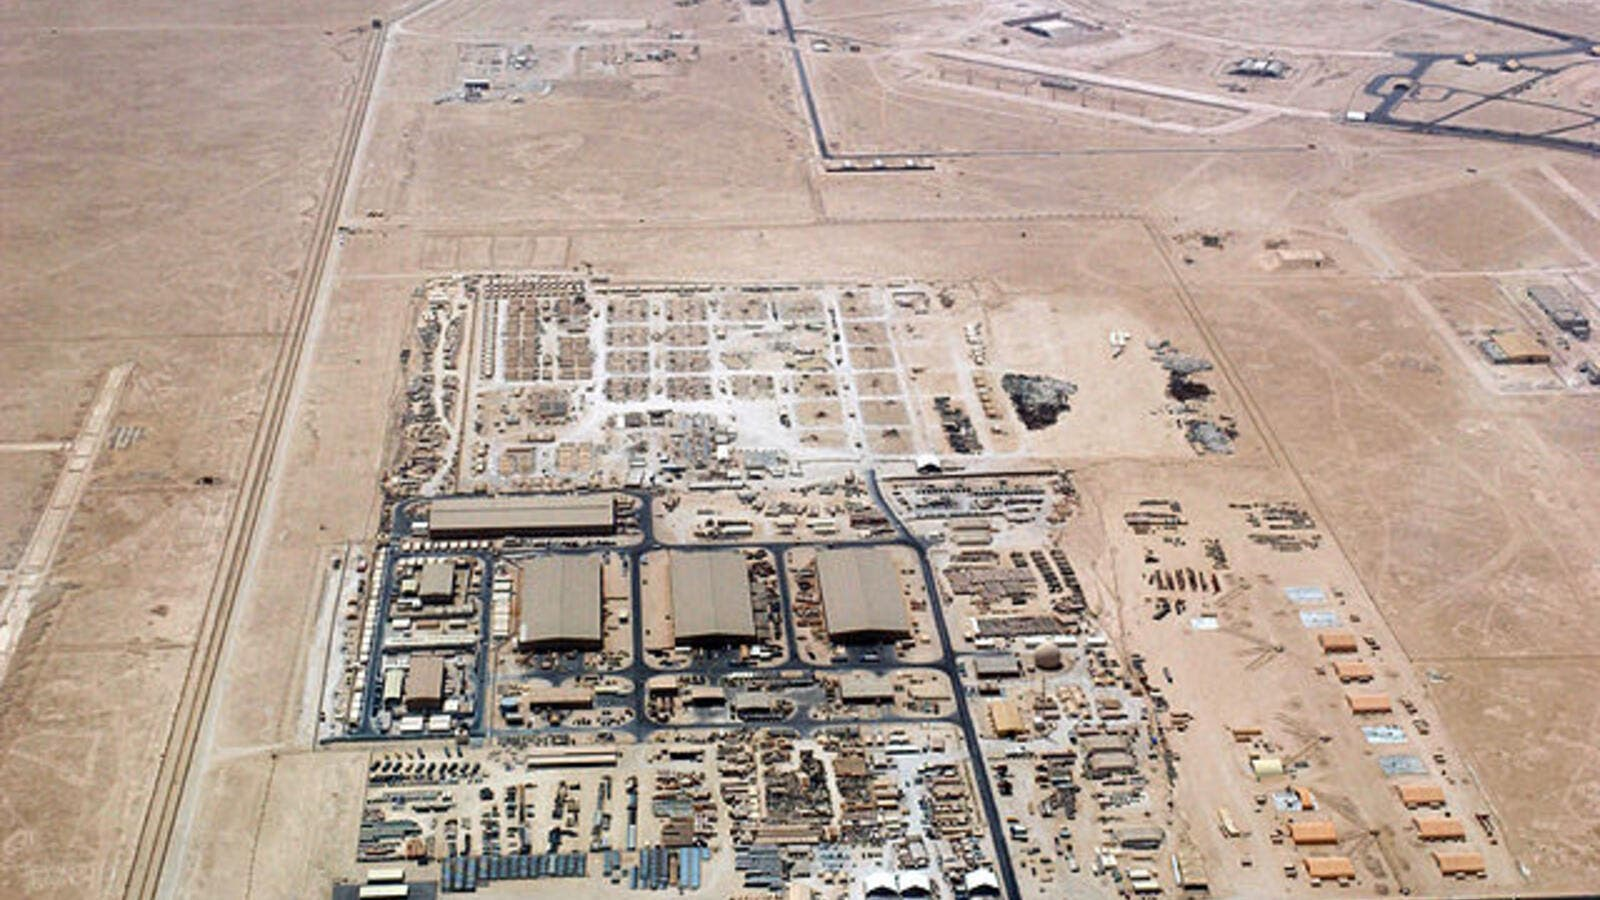 Al-Udeid Airbase, a US military base in Qatar. Turkey has stressed that its own military base in the tiny Gulf state has nothing to do with the ongoing diplomatic crisis. (Wikimedia Commons)